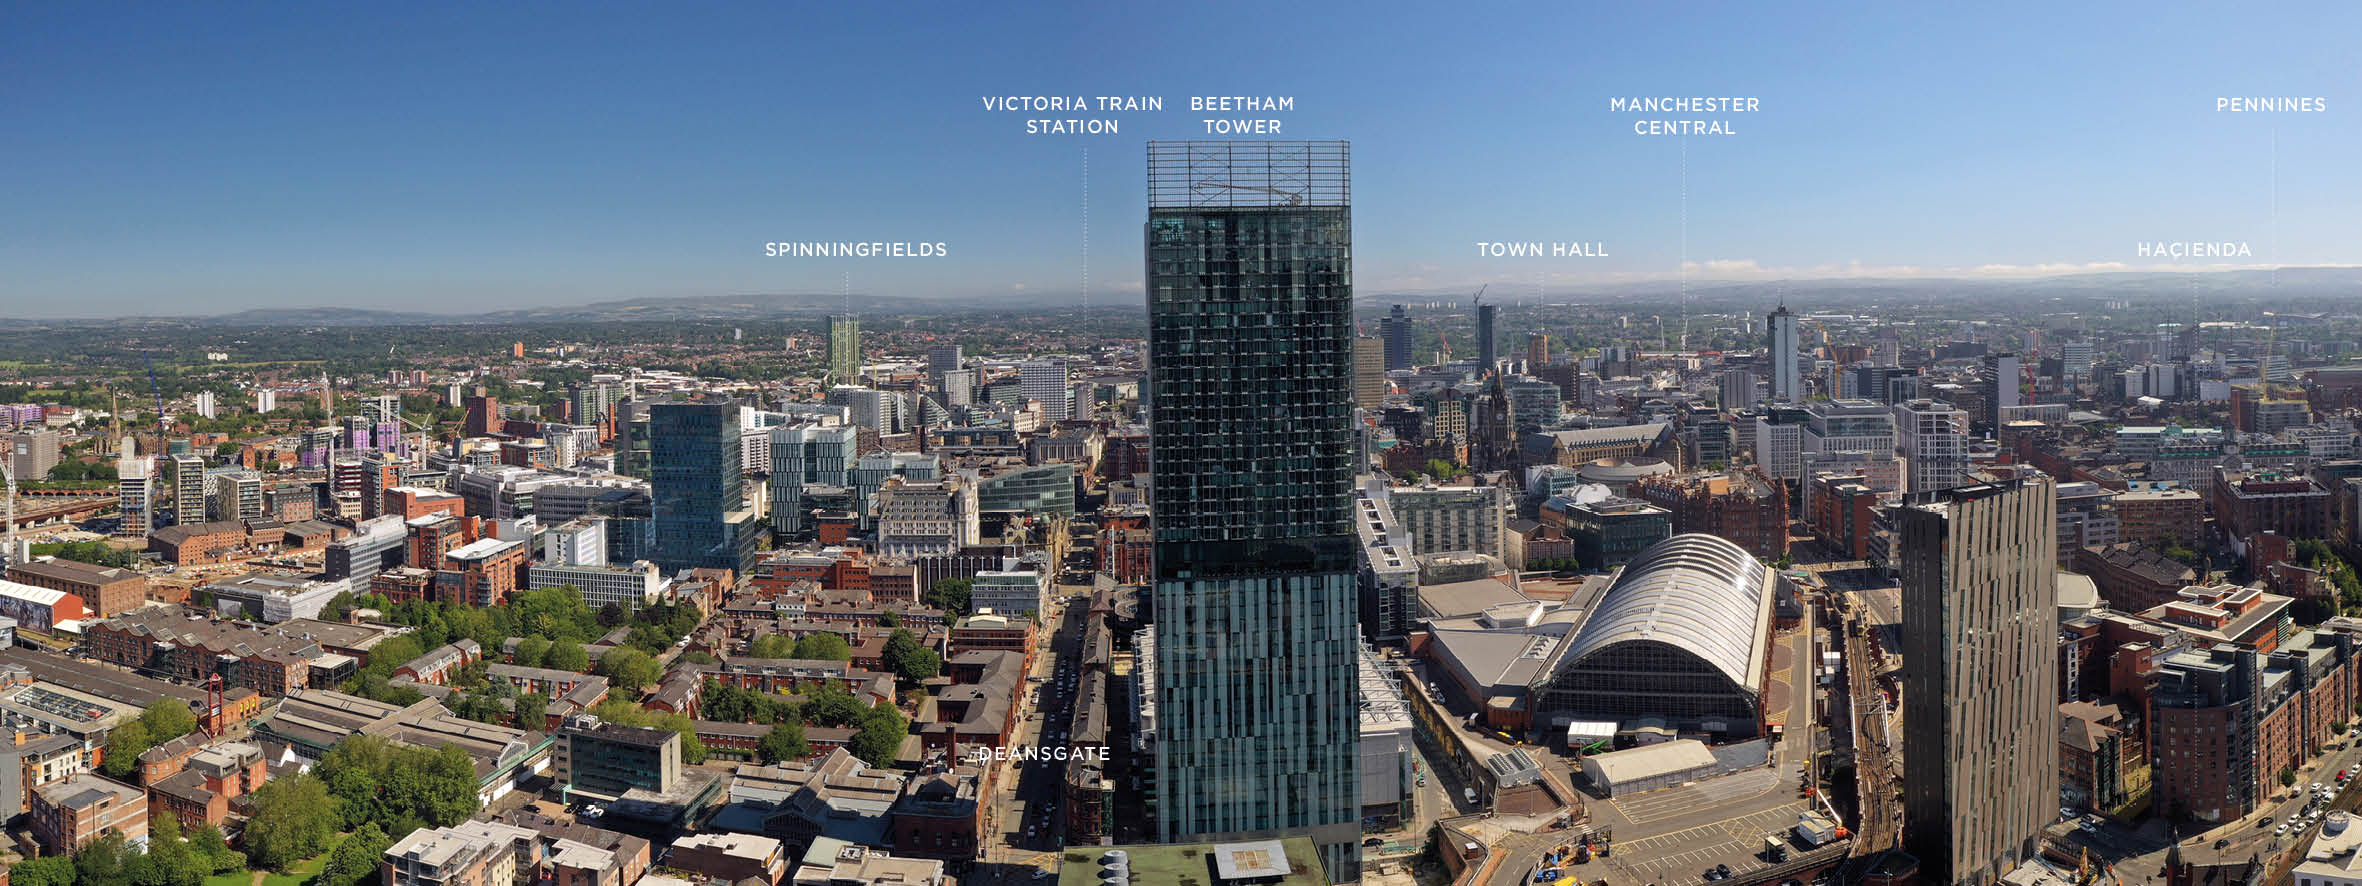 deansgate square manchester panoramic -2.jpg